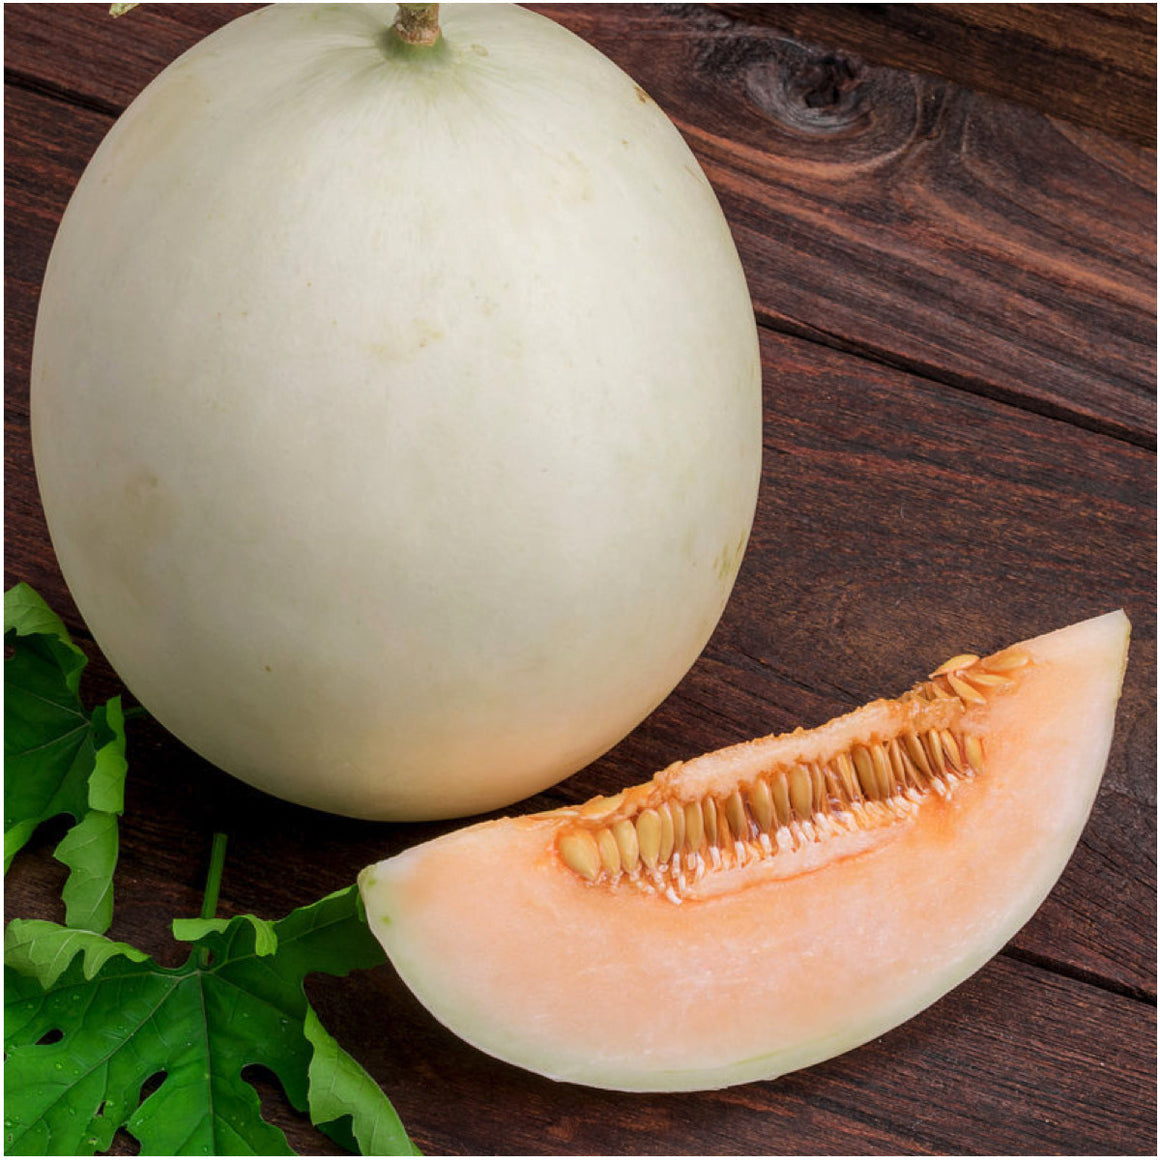 Orange Honeydew Melon Seeds (Cucumis melo)